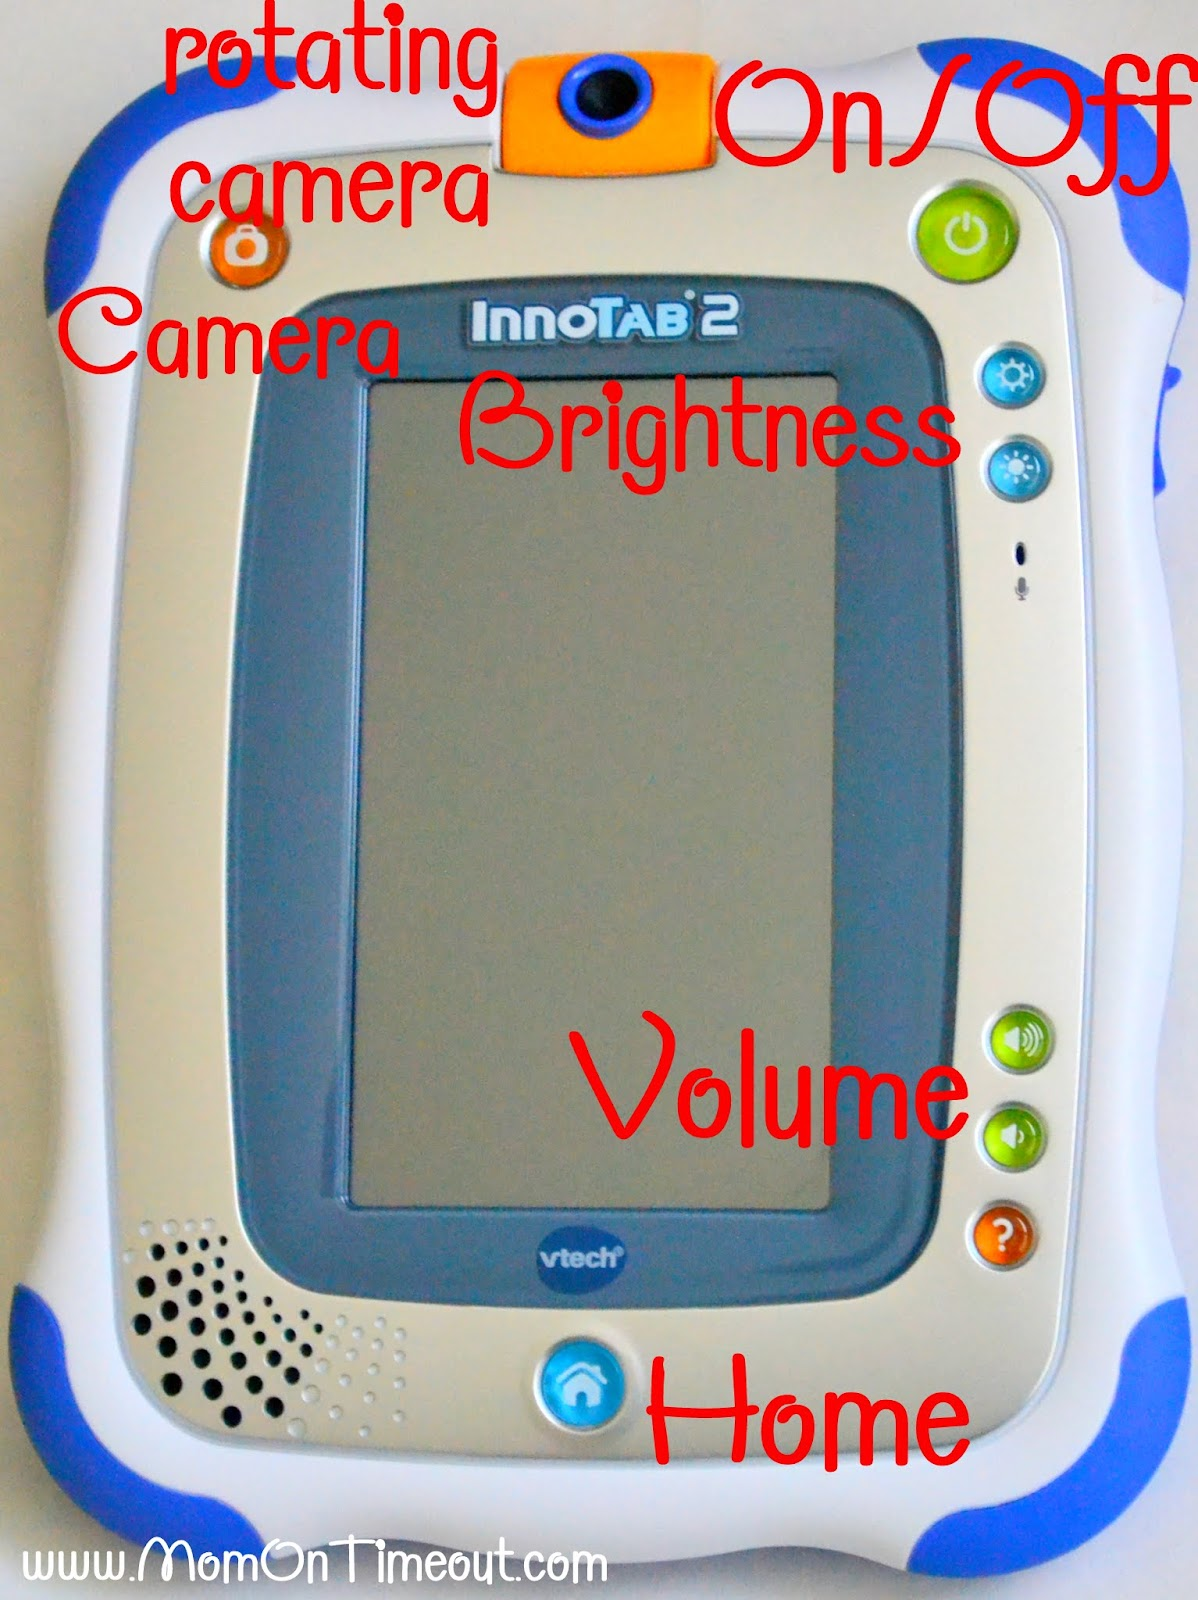 InnoTab 3S downloads available from the VTech Learning Lodge. Download apps, learning games, e-Books, videos and music for the InnoTab 3S.